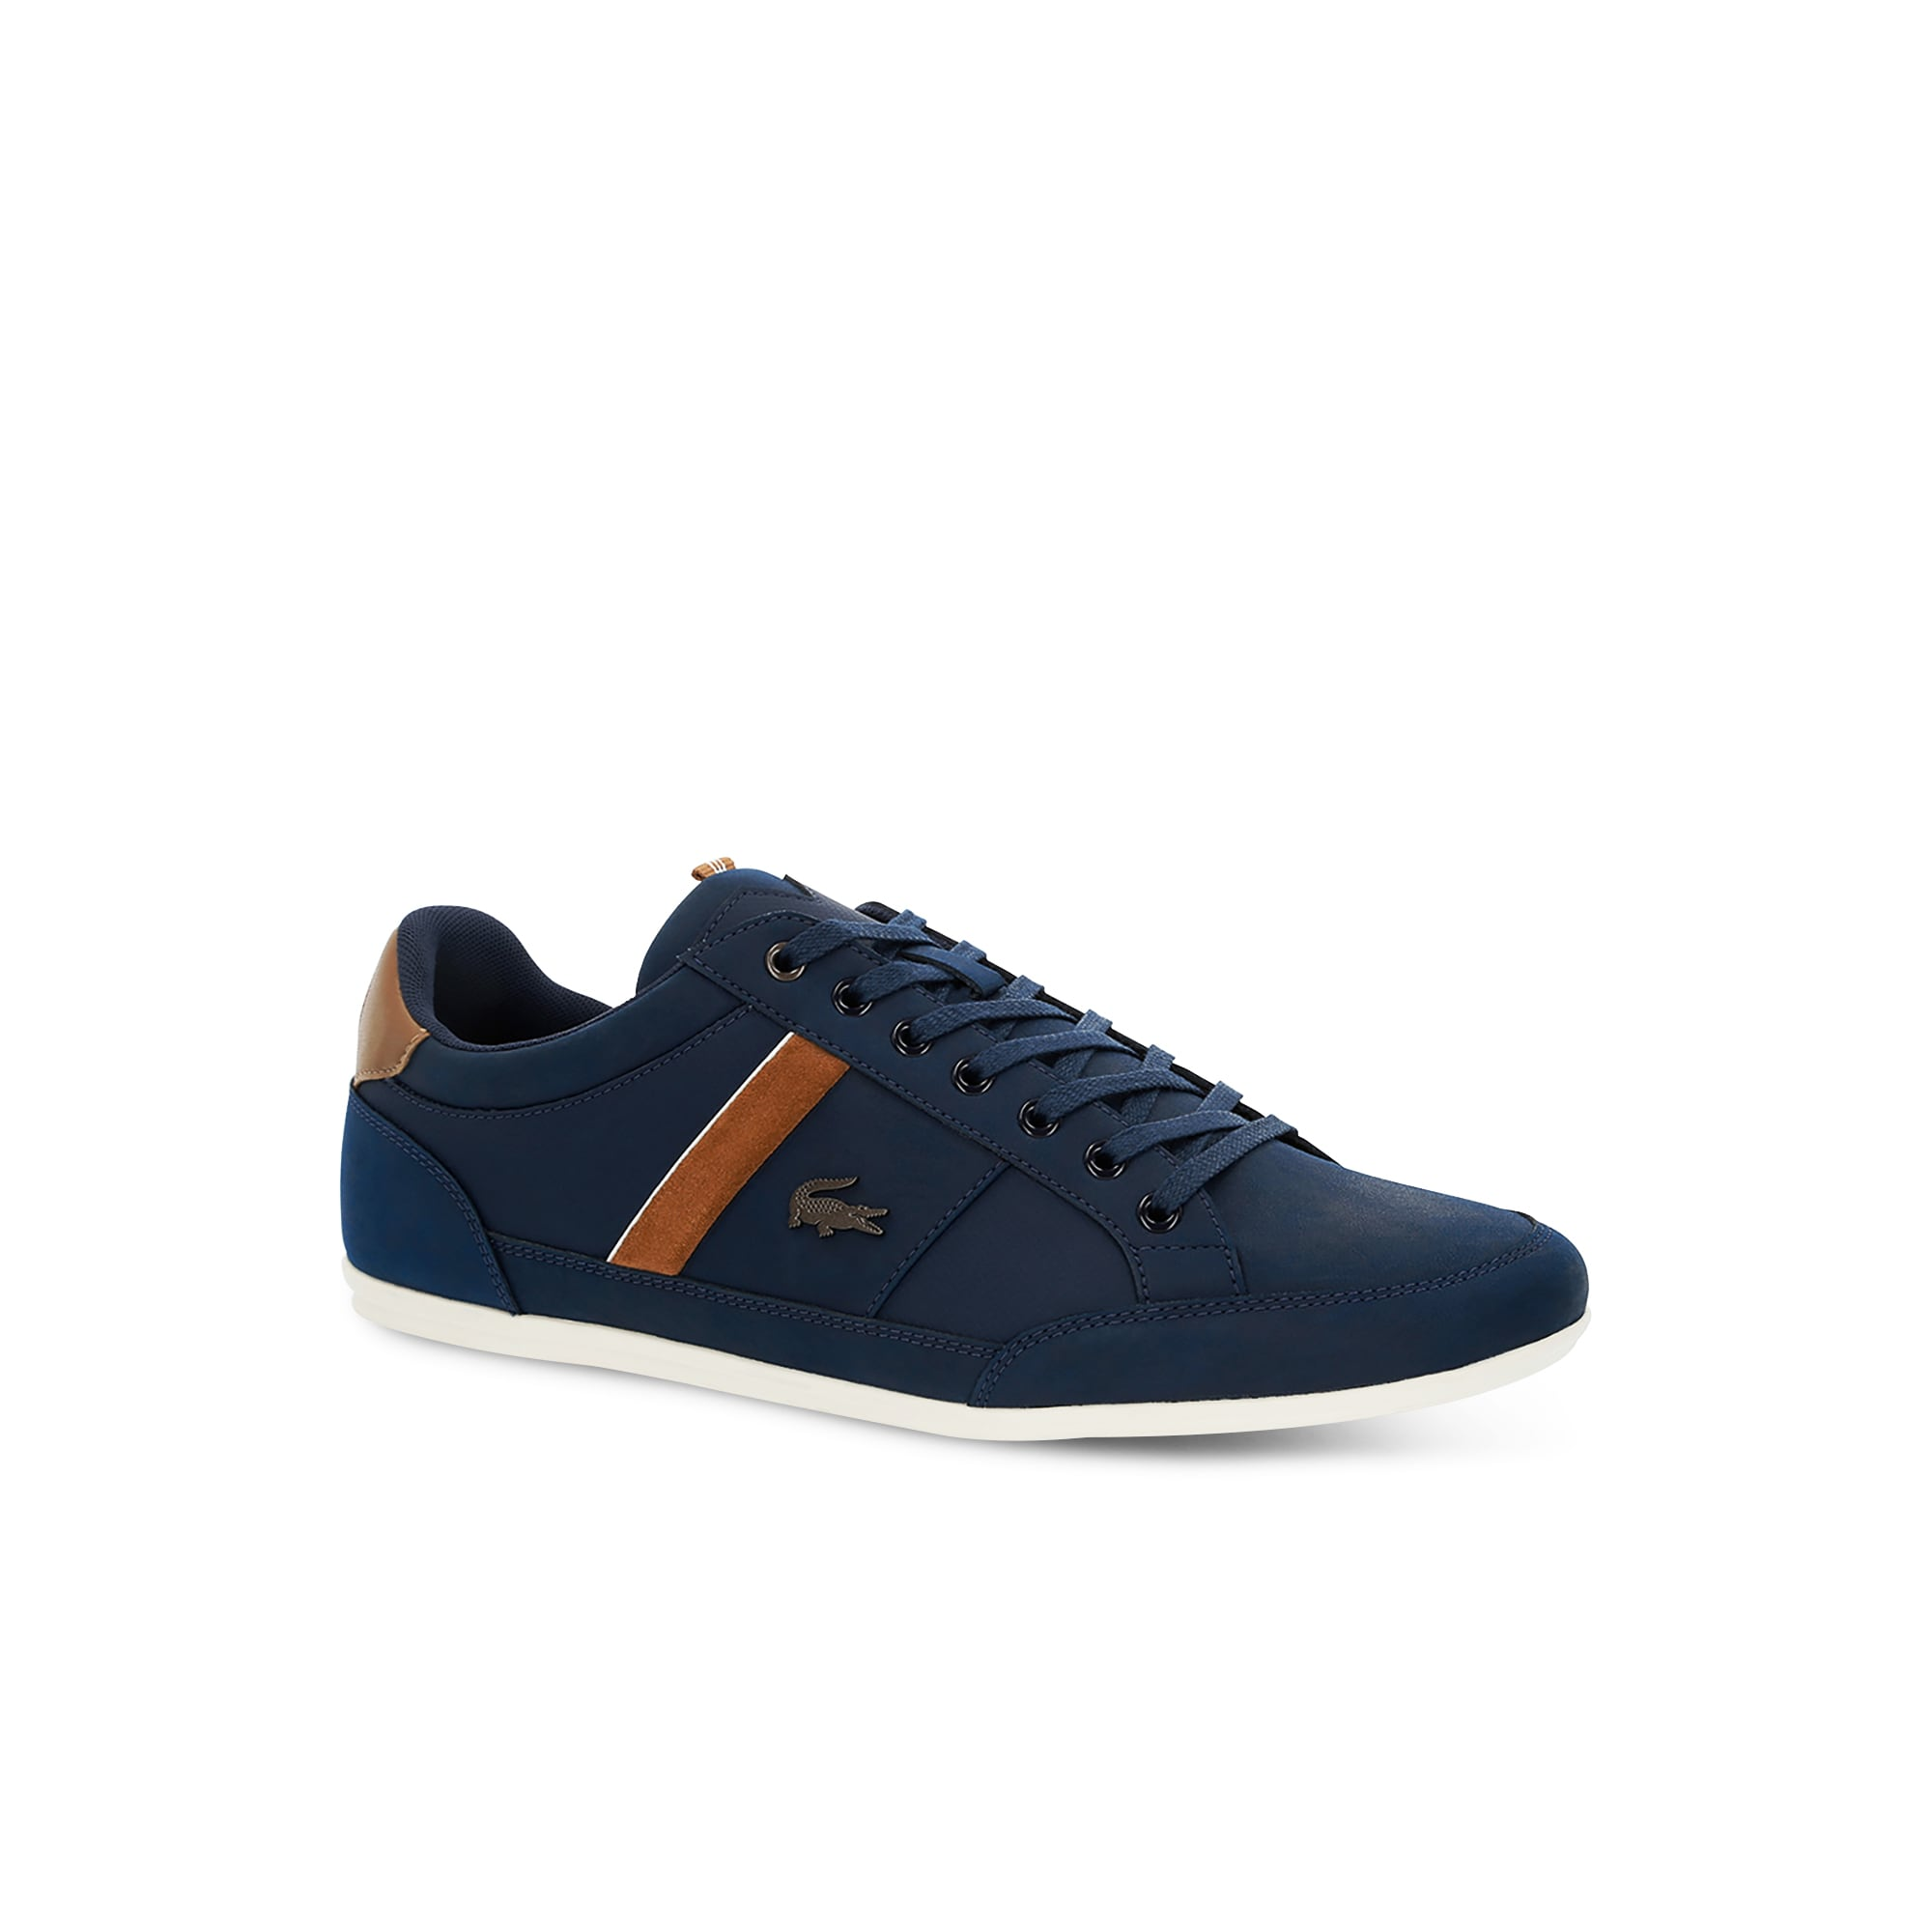 f4a640b69d0006 Lacoste shoes for men  Sneakers